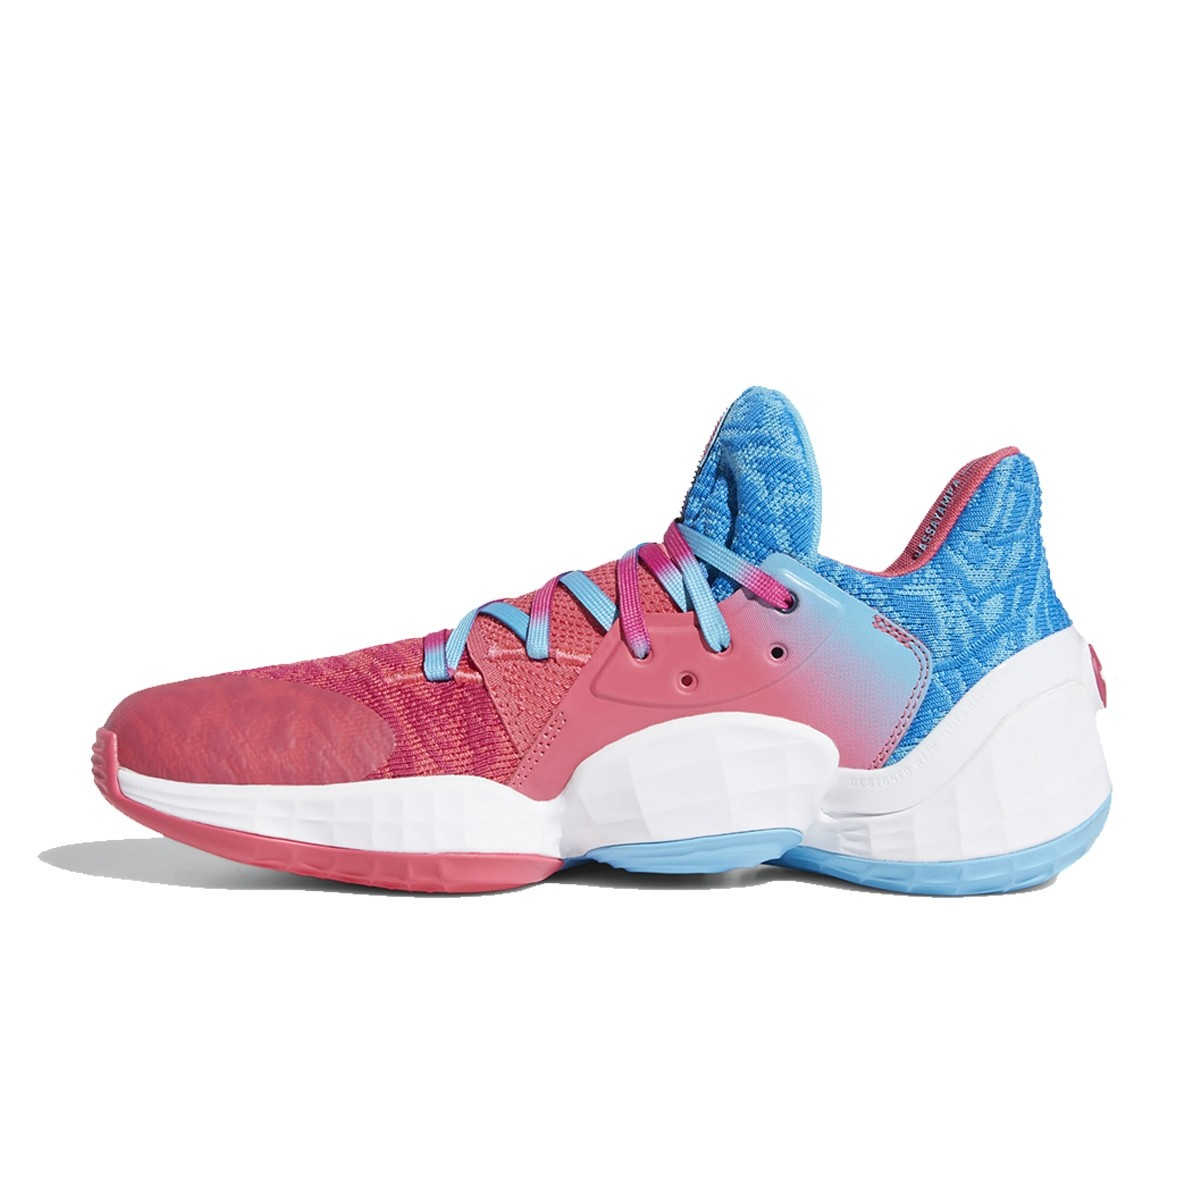 ADIDAS Harden Vol.4 'Candy Paint'-EF0998